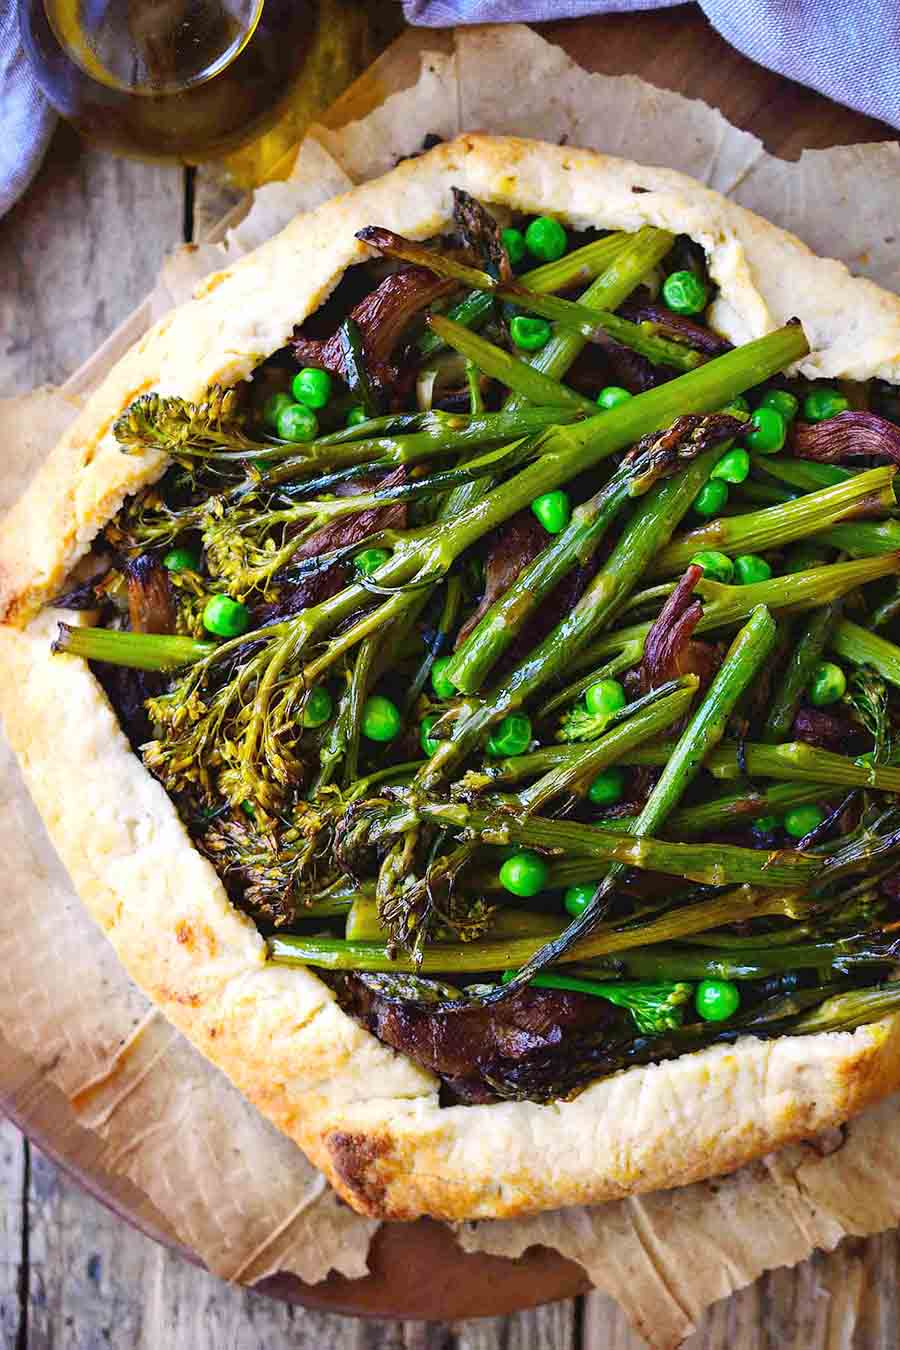 Closeup view of a cooked galette with peas and brocollini on top.